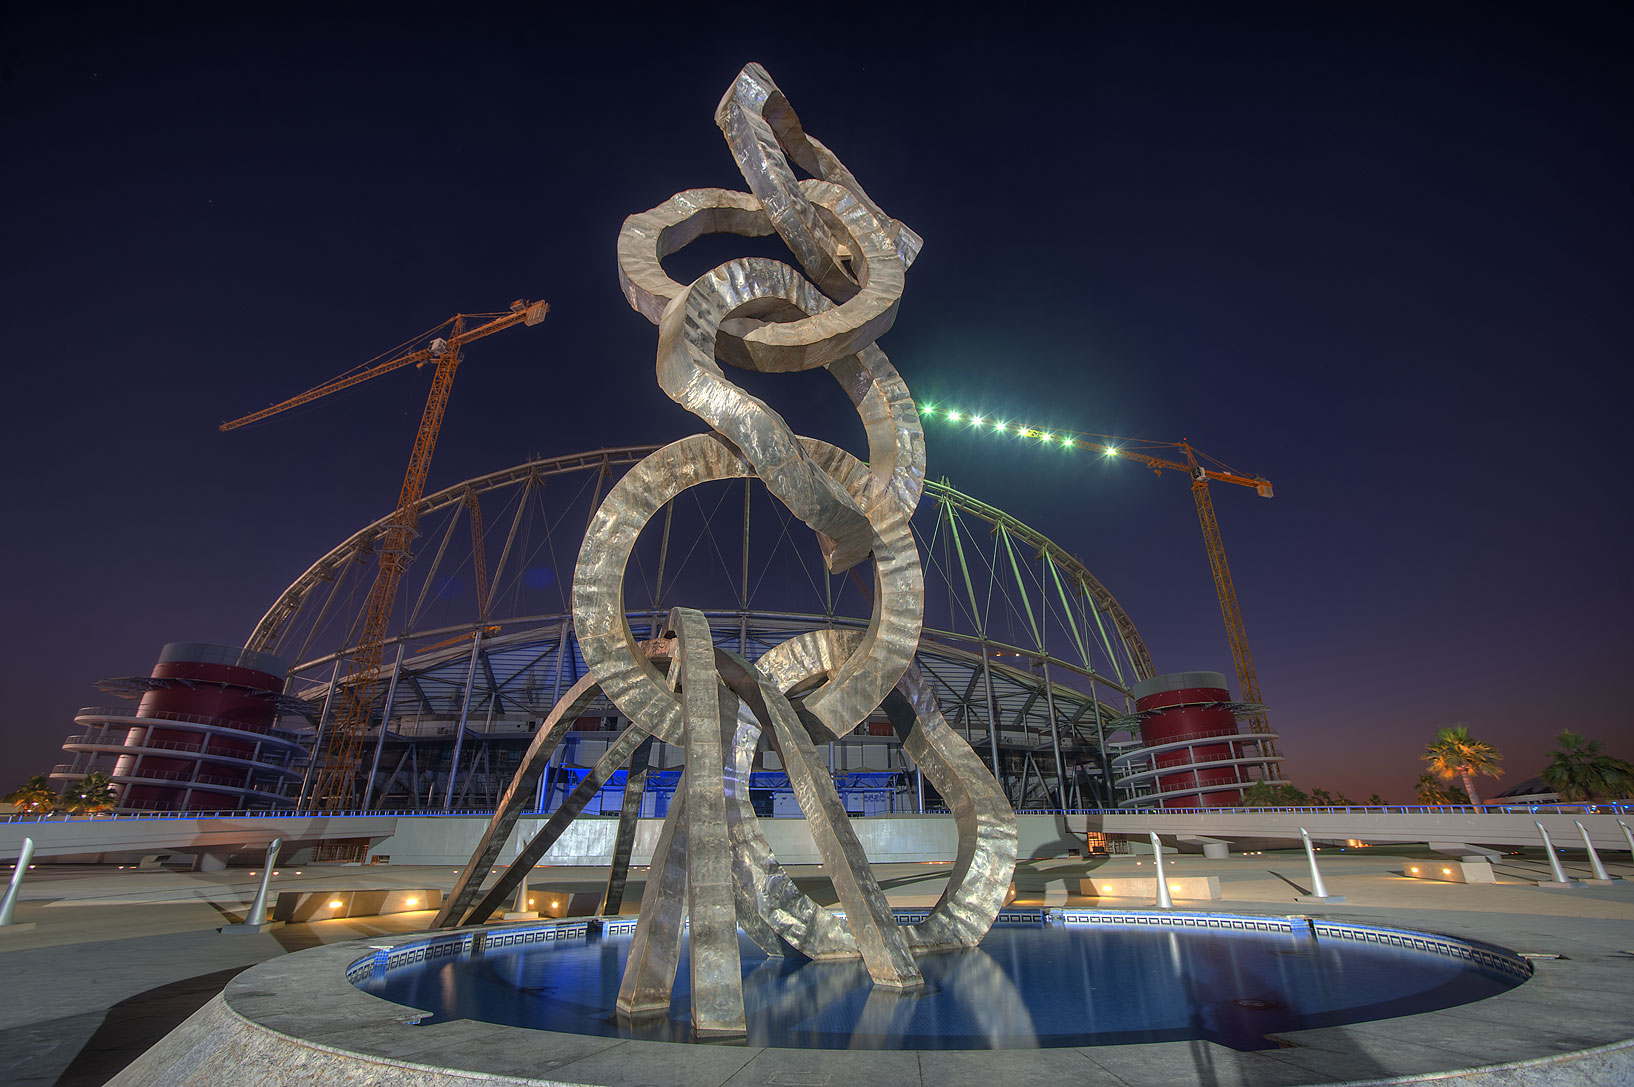 Olympic rings sculpture and Khalifa Stadium in Aspire Zone. Doha, Qatar